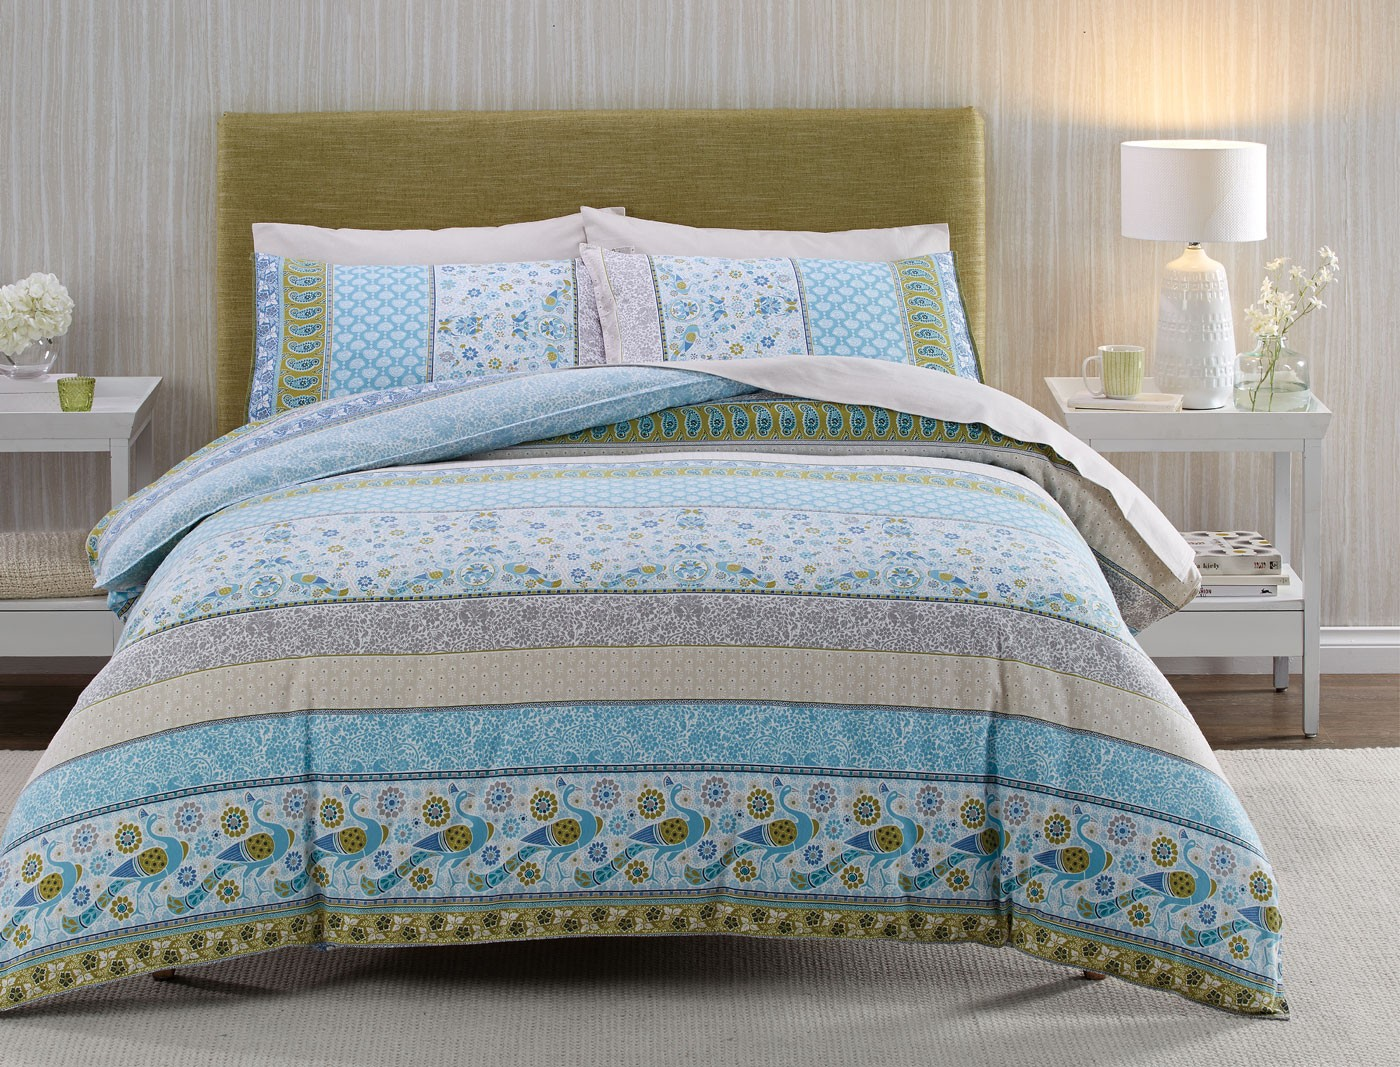 Bed Bath And Table Quilt Covers | Modern Coffee Tables and Accent Tables